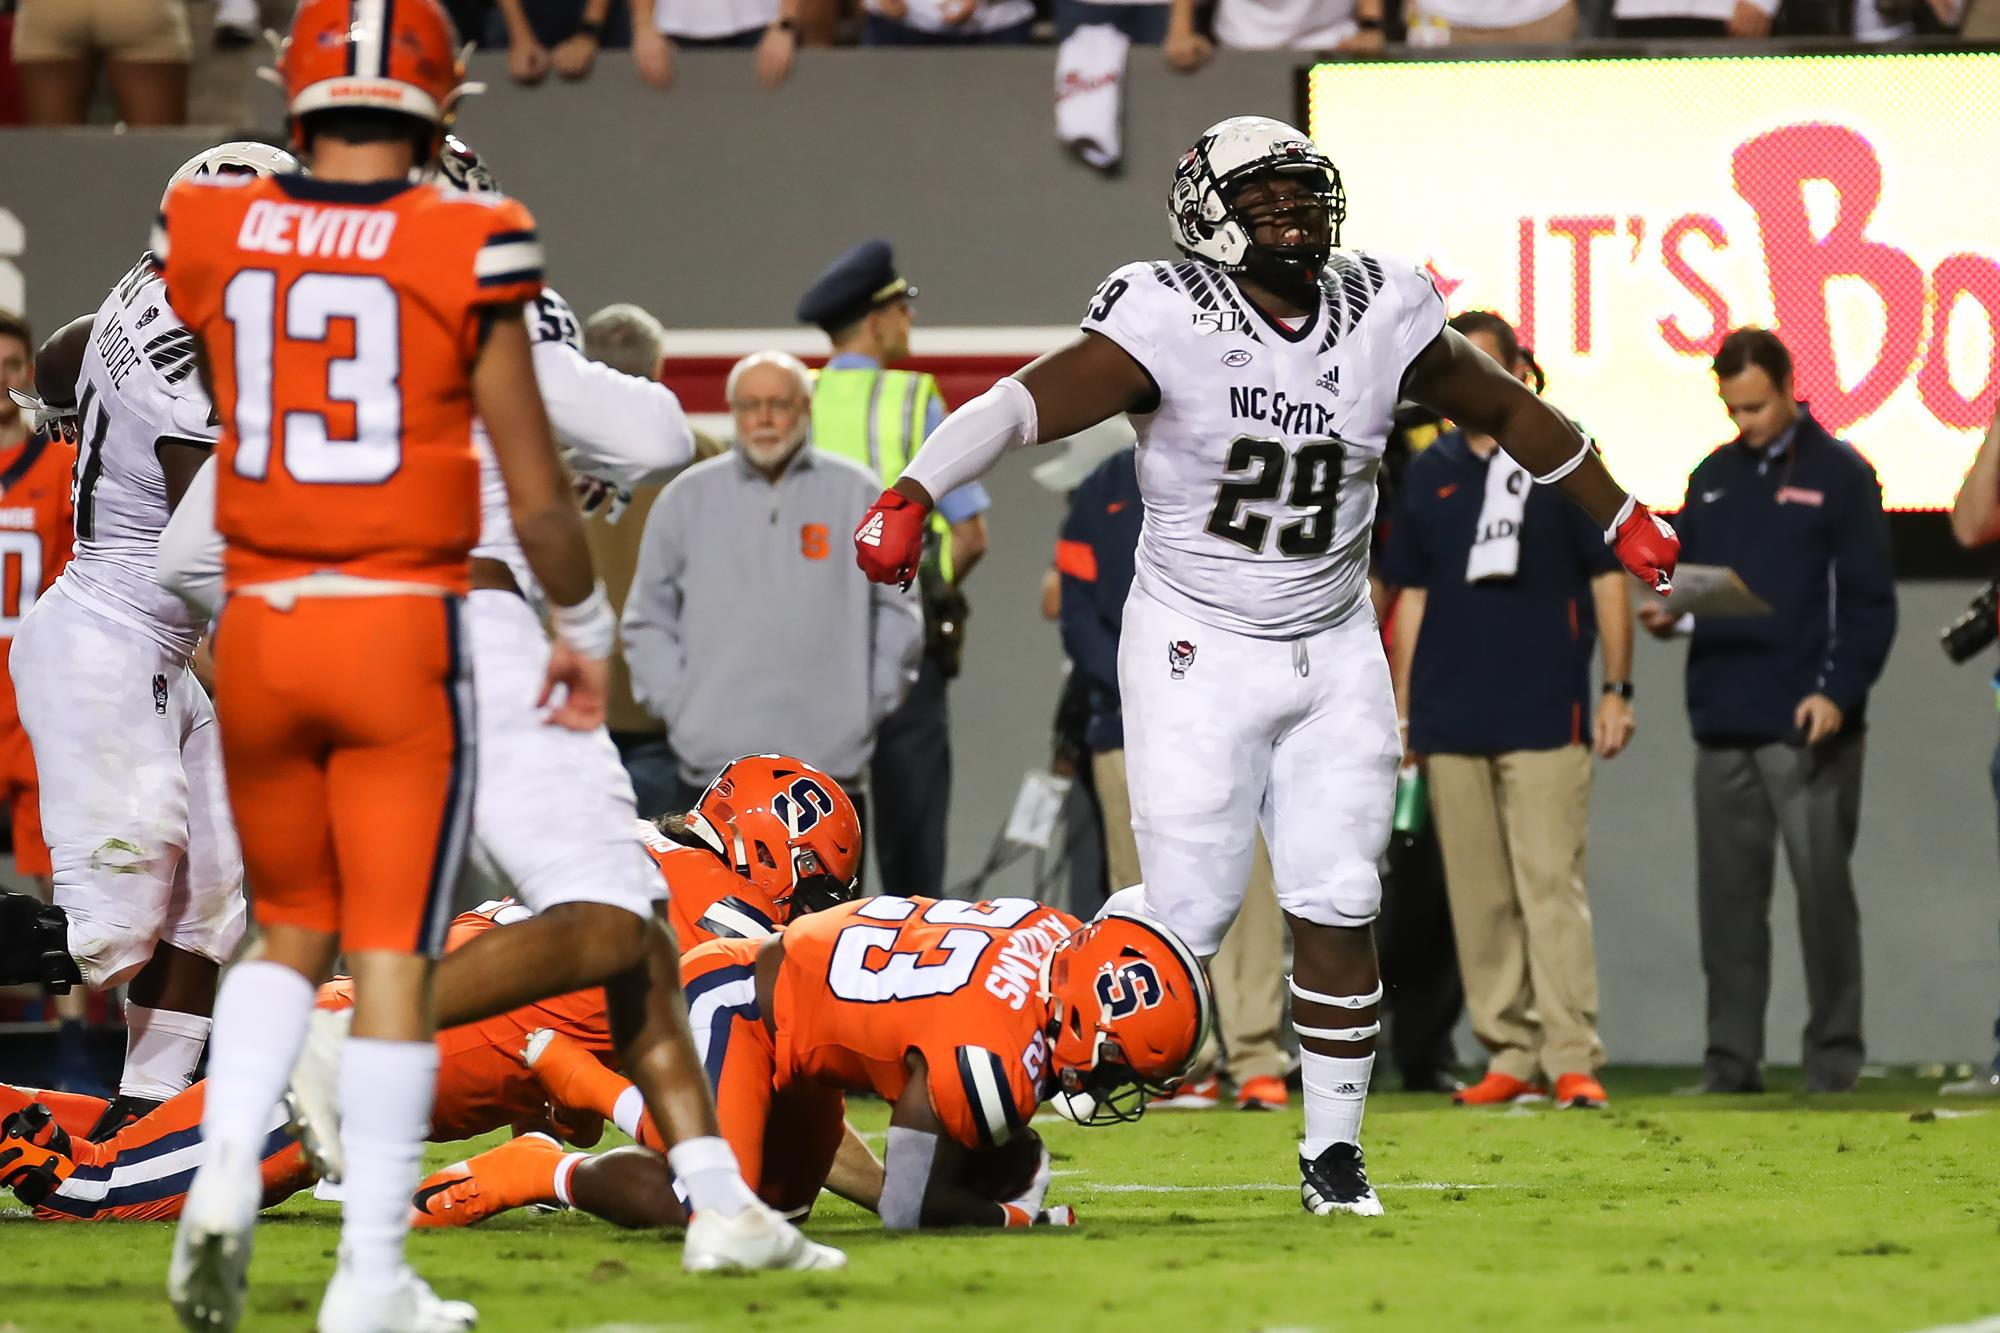 Alim McNeil will forgo his senior year and declare for the NFL draft.